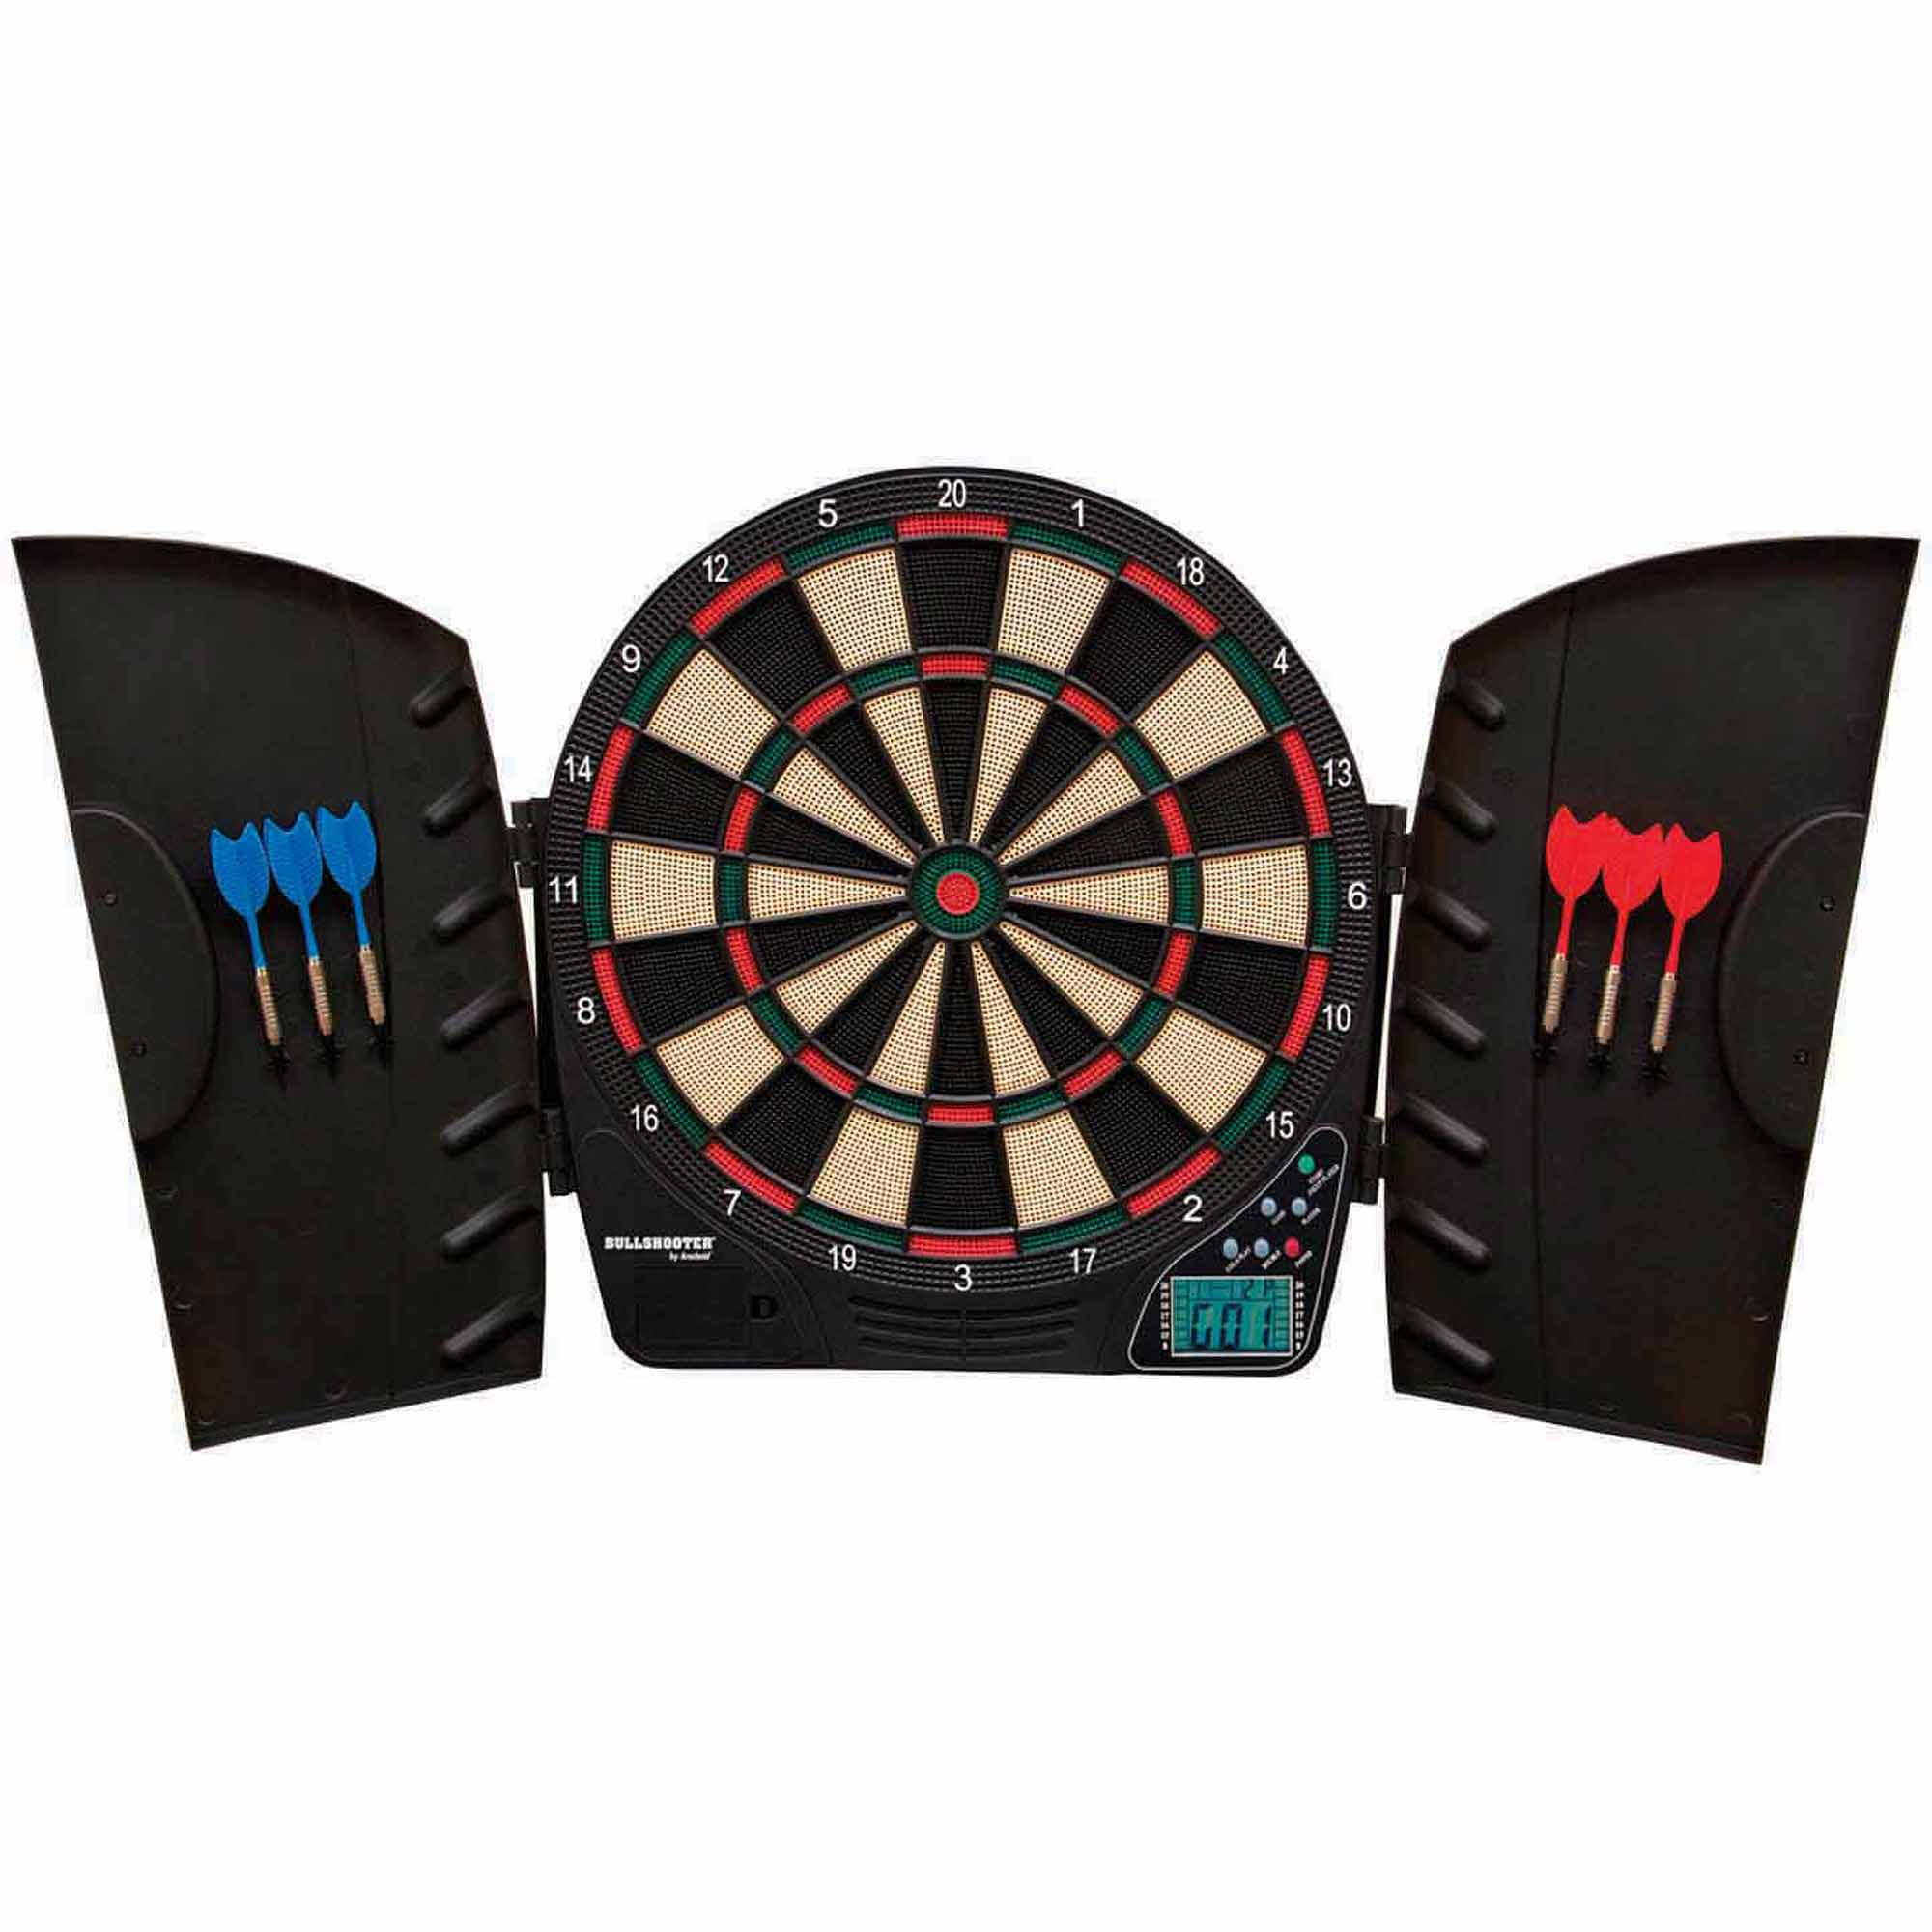 Bullshooter Reactor Electronic Dart Board